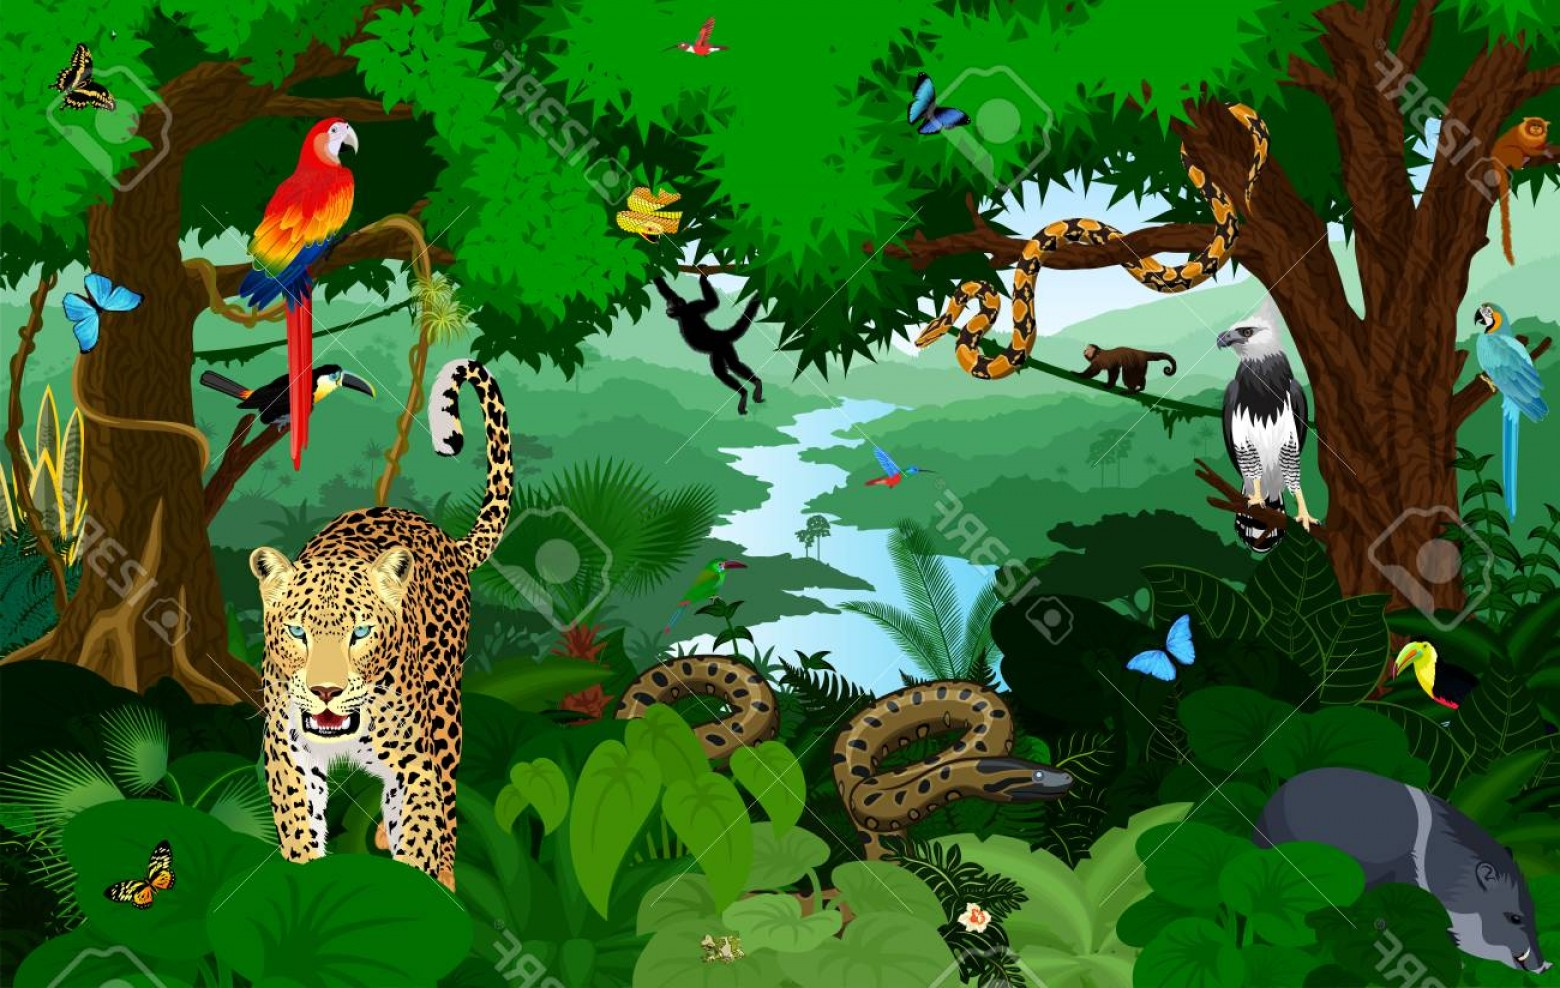 Vector Rainforest Anaconda: Photostock Vector Rainforest With Animals Vector Illustration Vector Green Tropical Forest Jungle With Parrots Jaguar